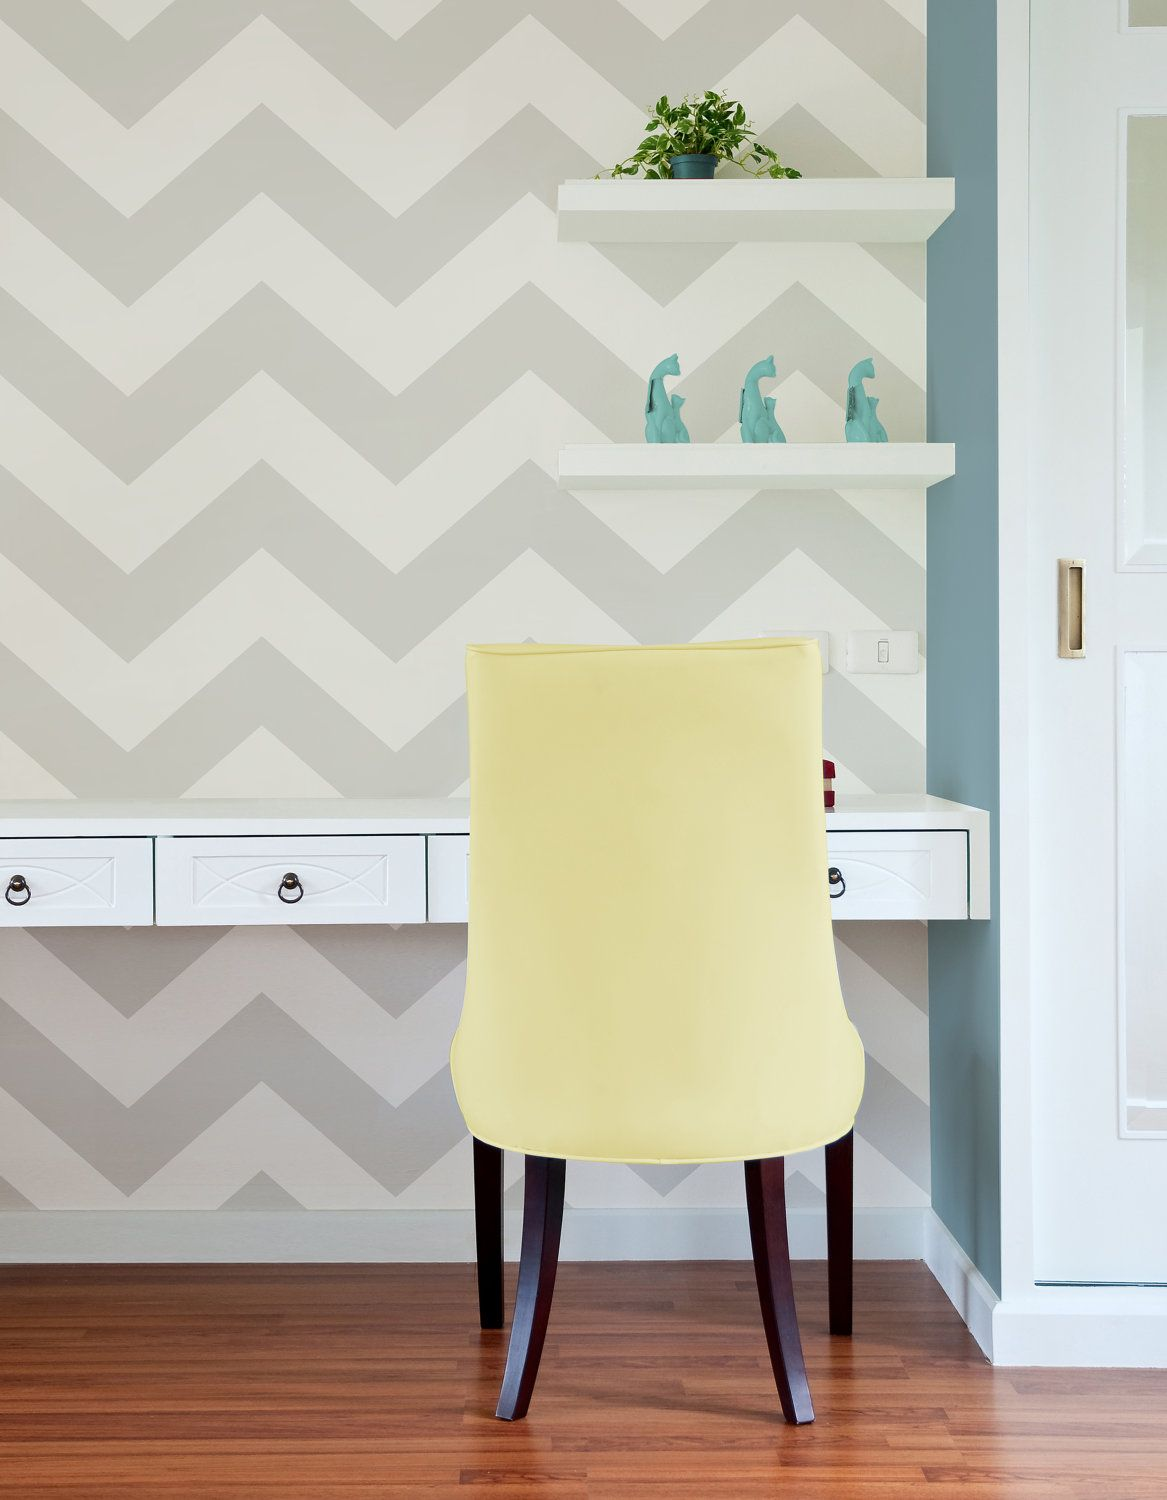 Large Chevron Stencil: Reusable Stencil for DIY decor | Chevron ...